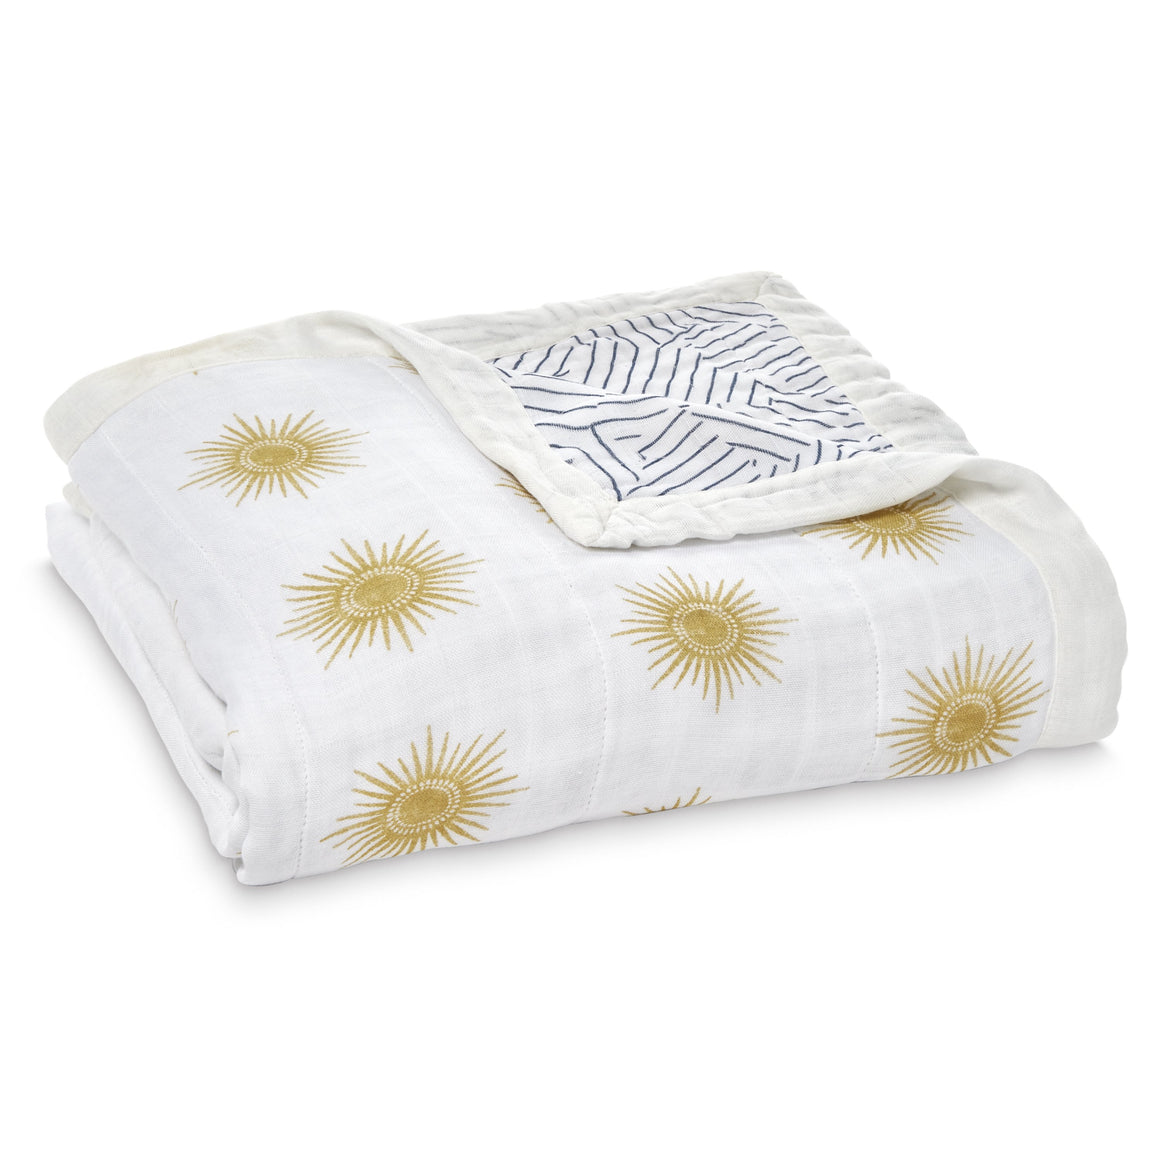 aden + anais golden sun silky soft bamboo muslin dream blanket